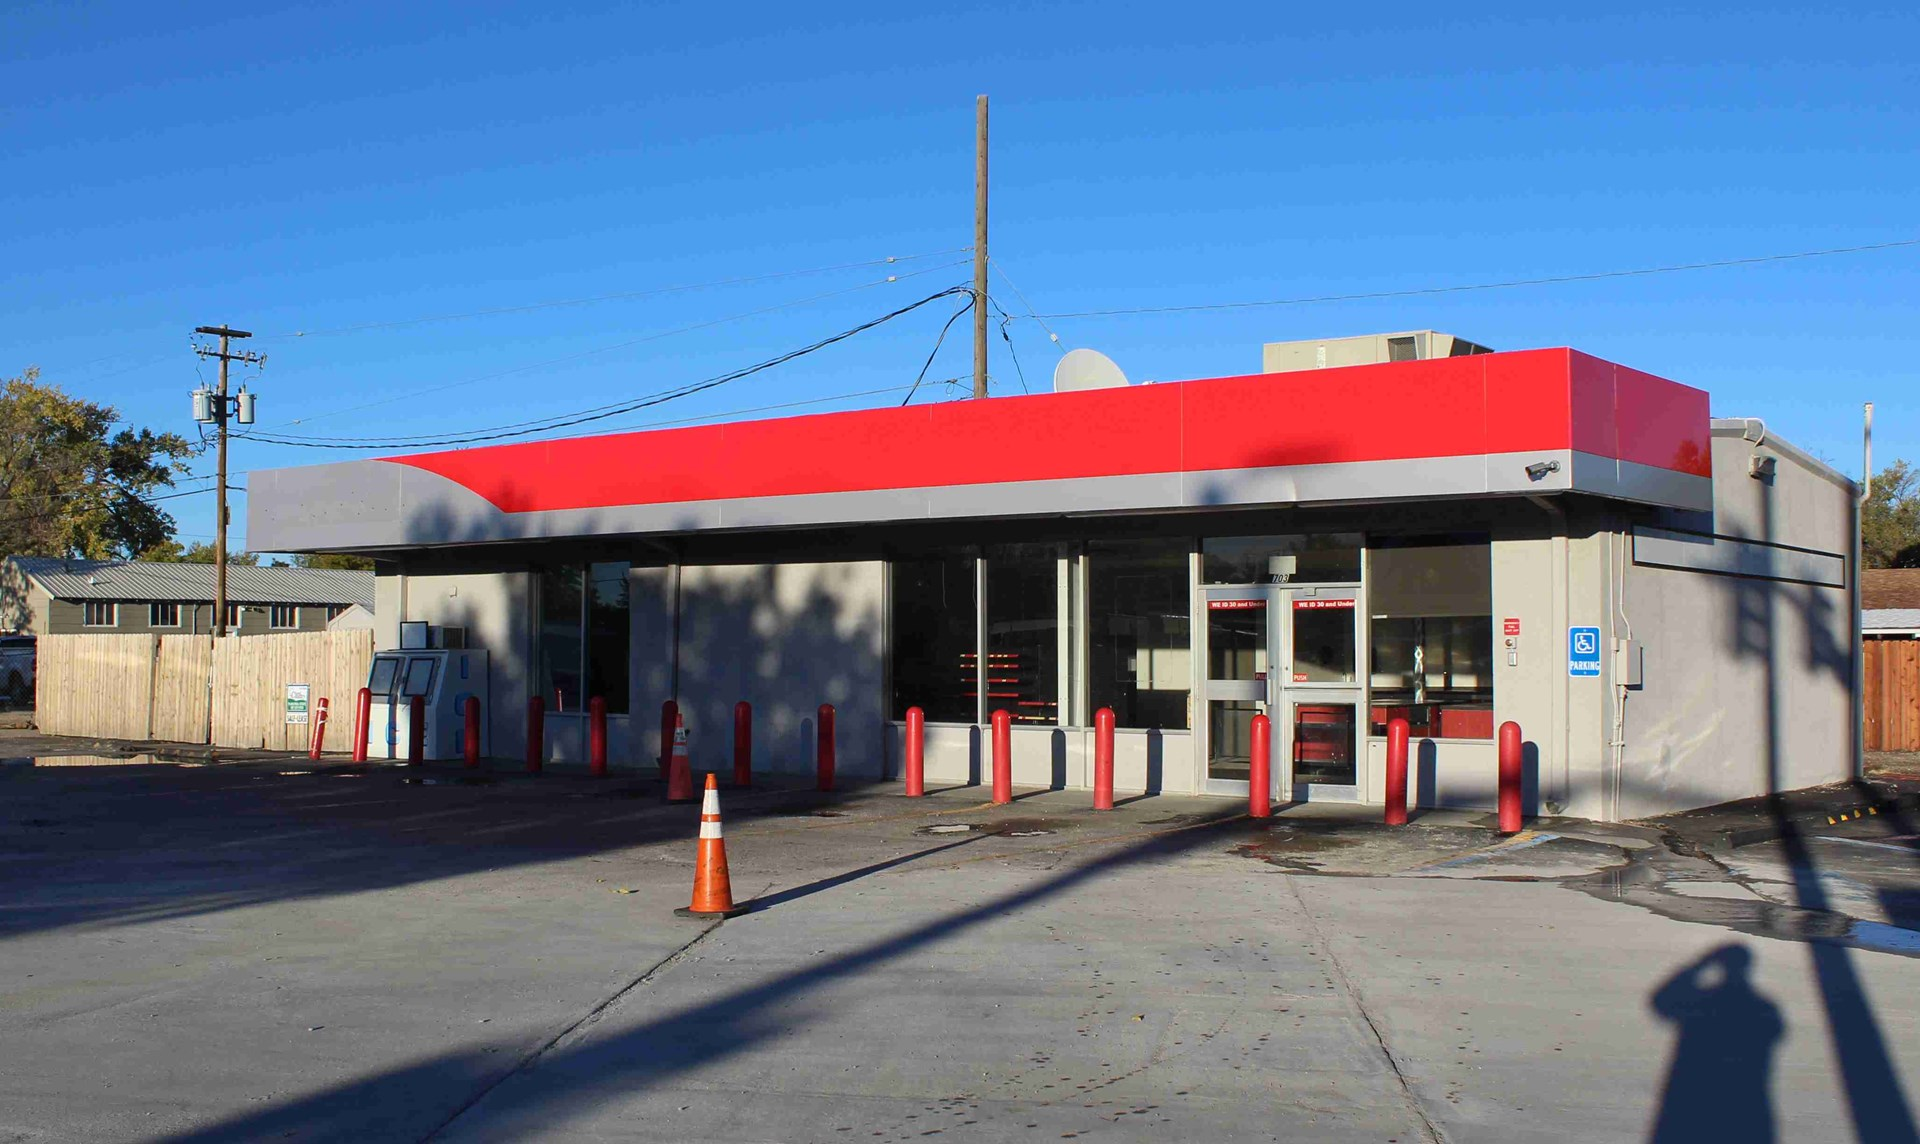 Commercial Property with Ideal Location Adjacent to I-25